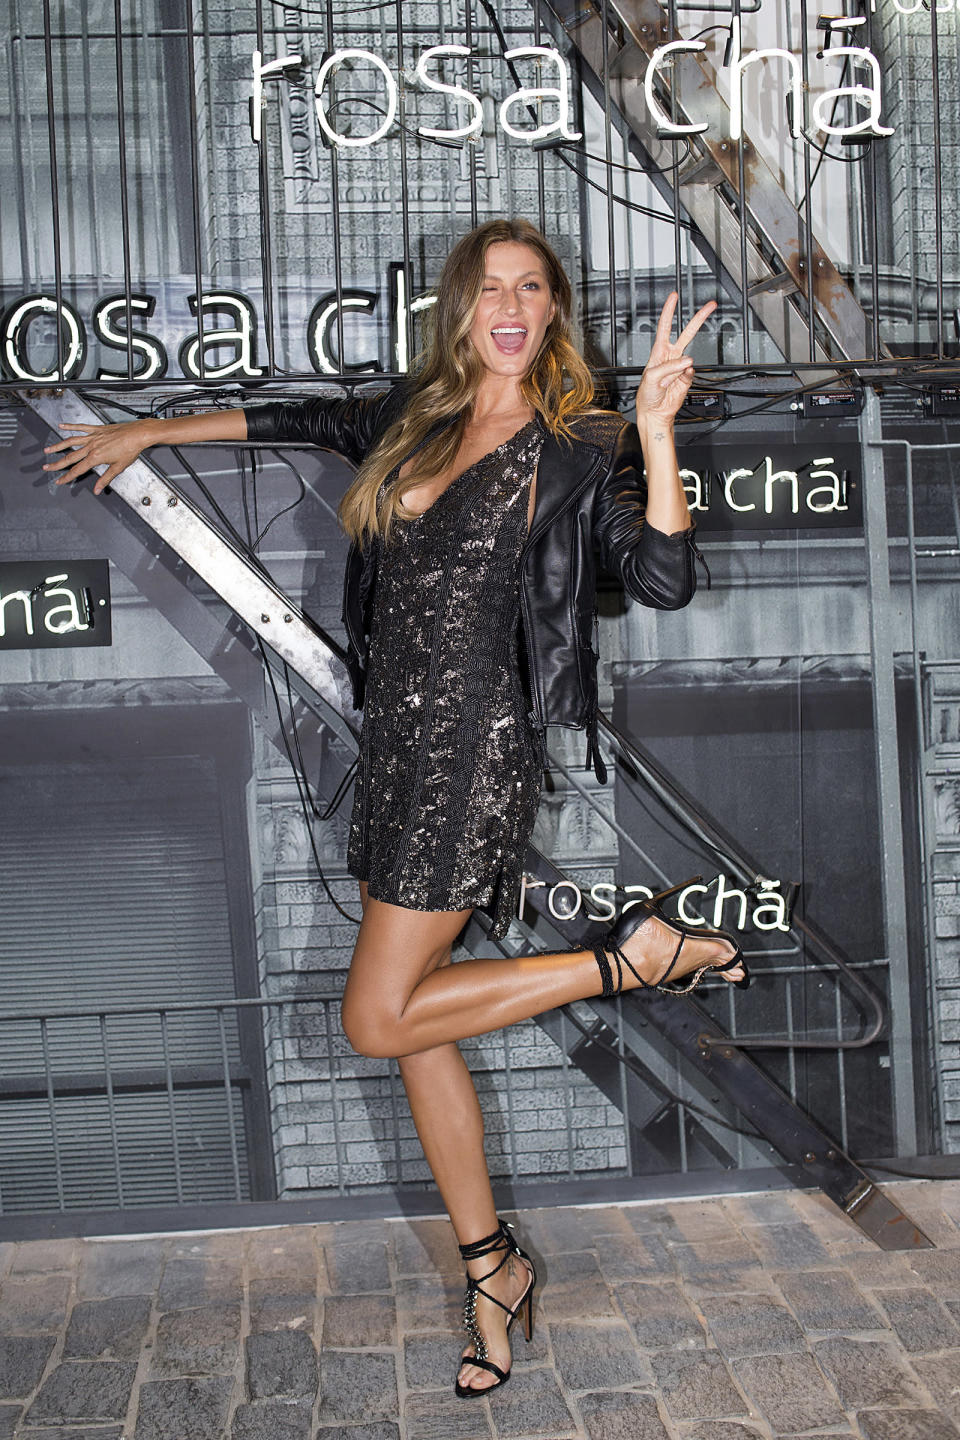 <p>Gisele does a flirty leg pop along with flashing the peace sign at the Rosa Chá event in São Paulo. (Photo: Getty Images) </p>